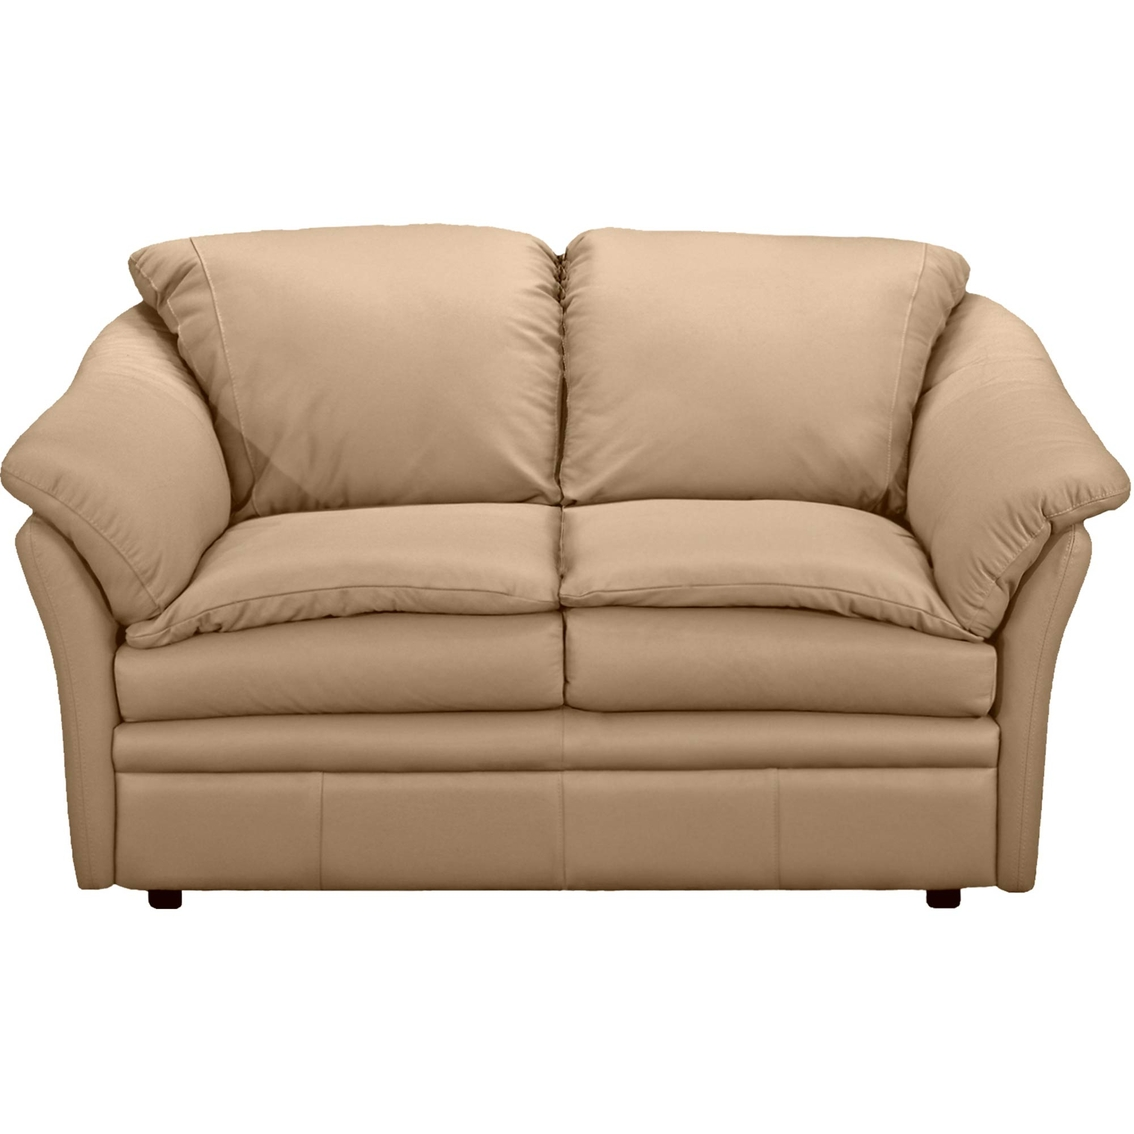 Wustrow Umber Italian Leather Power Reclining Sofa: Omnia Leather Uptown Loveseat